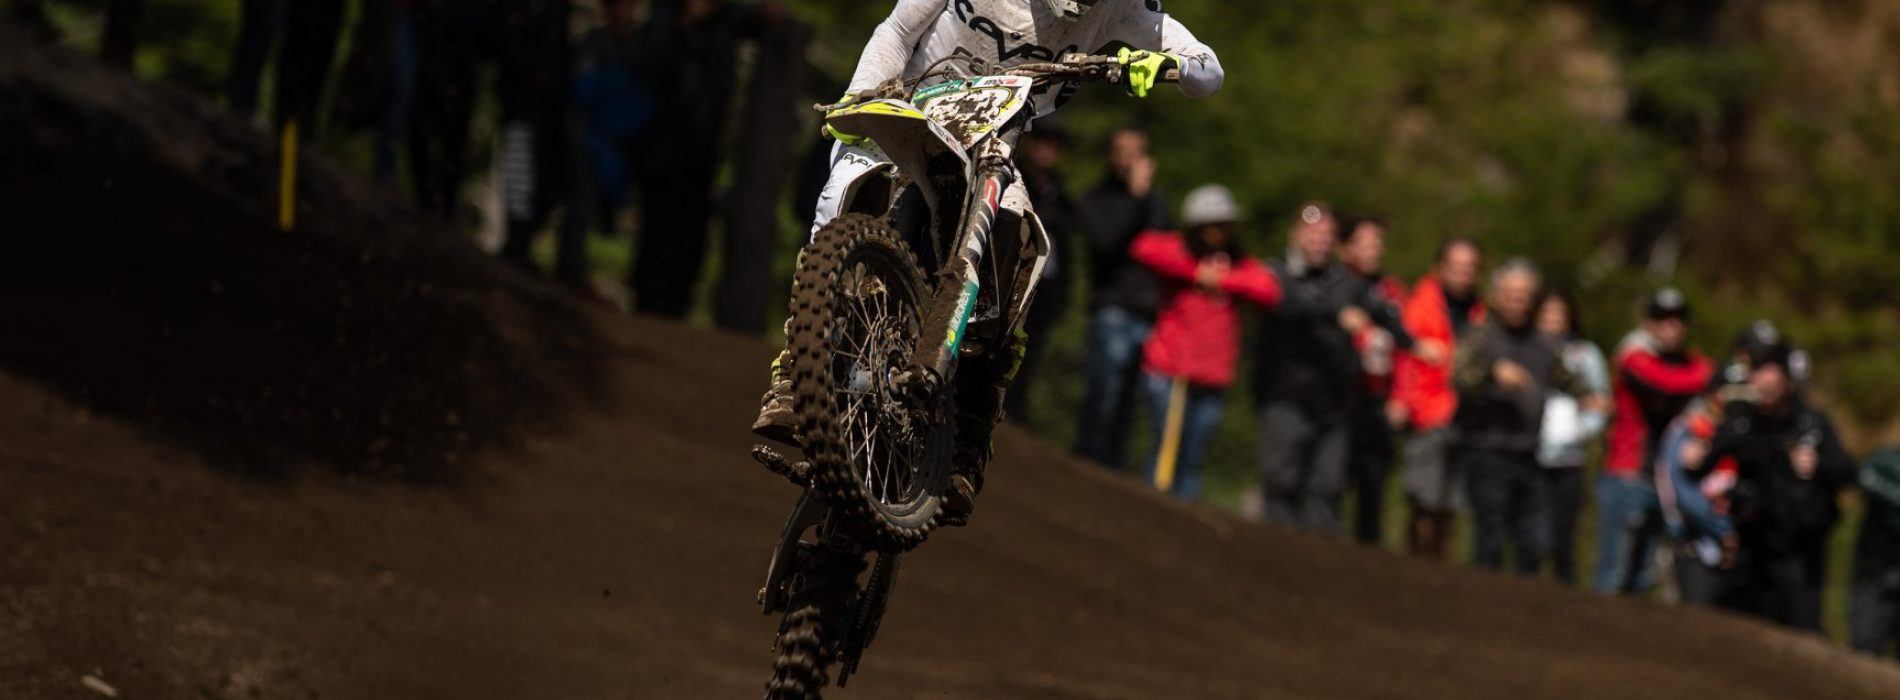 Dylan Walsh races MXGP/MX2 Round 2 this weekend: showing all Canterbury support